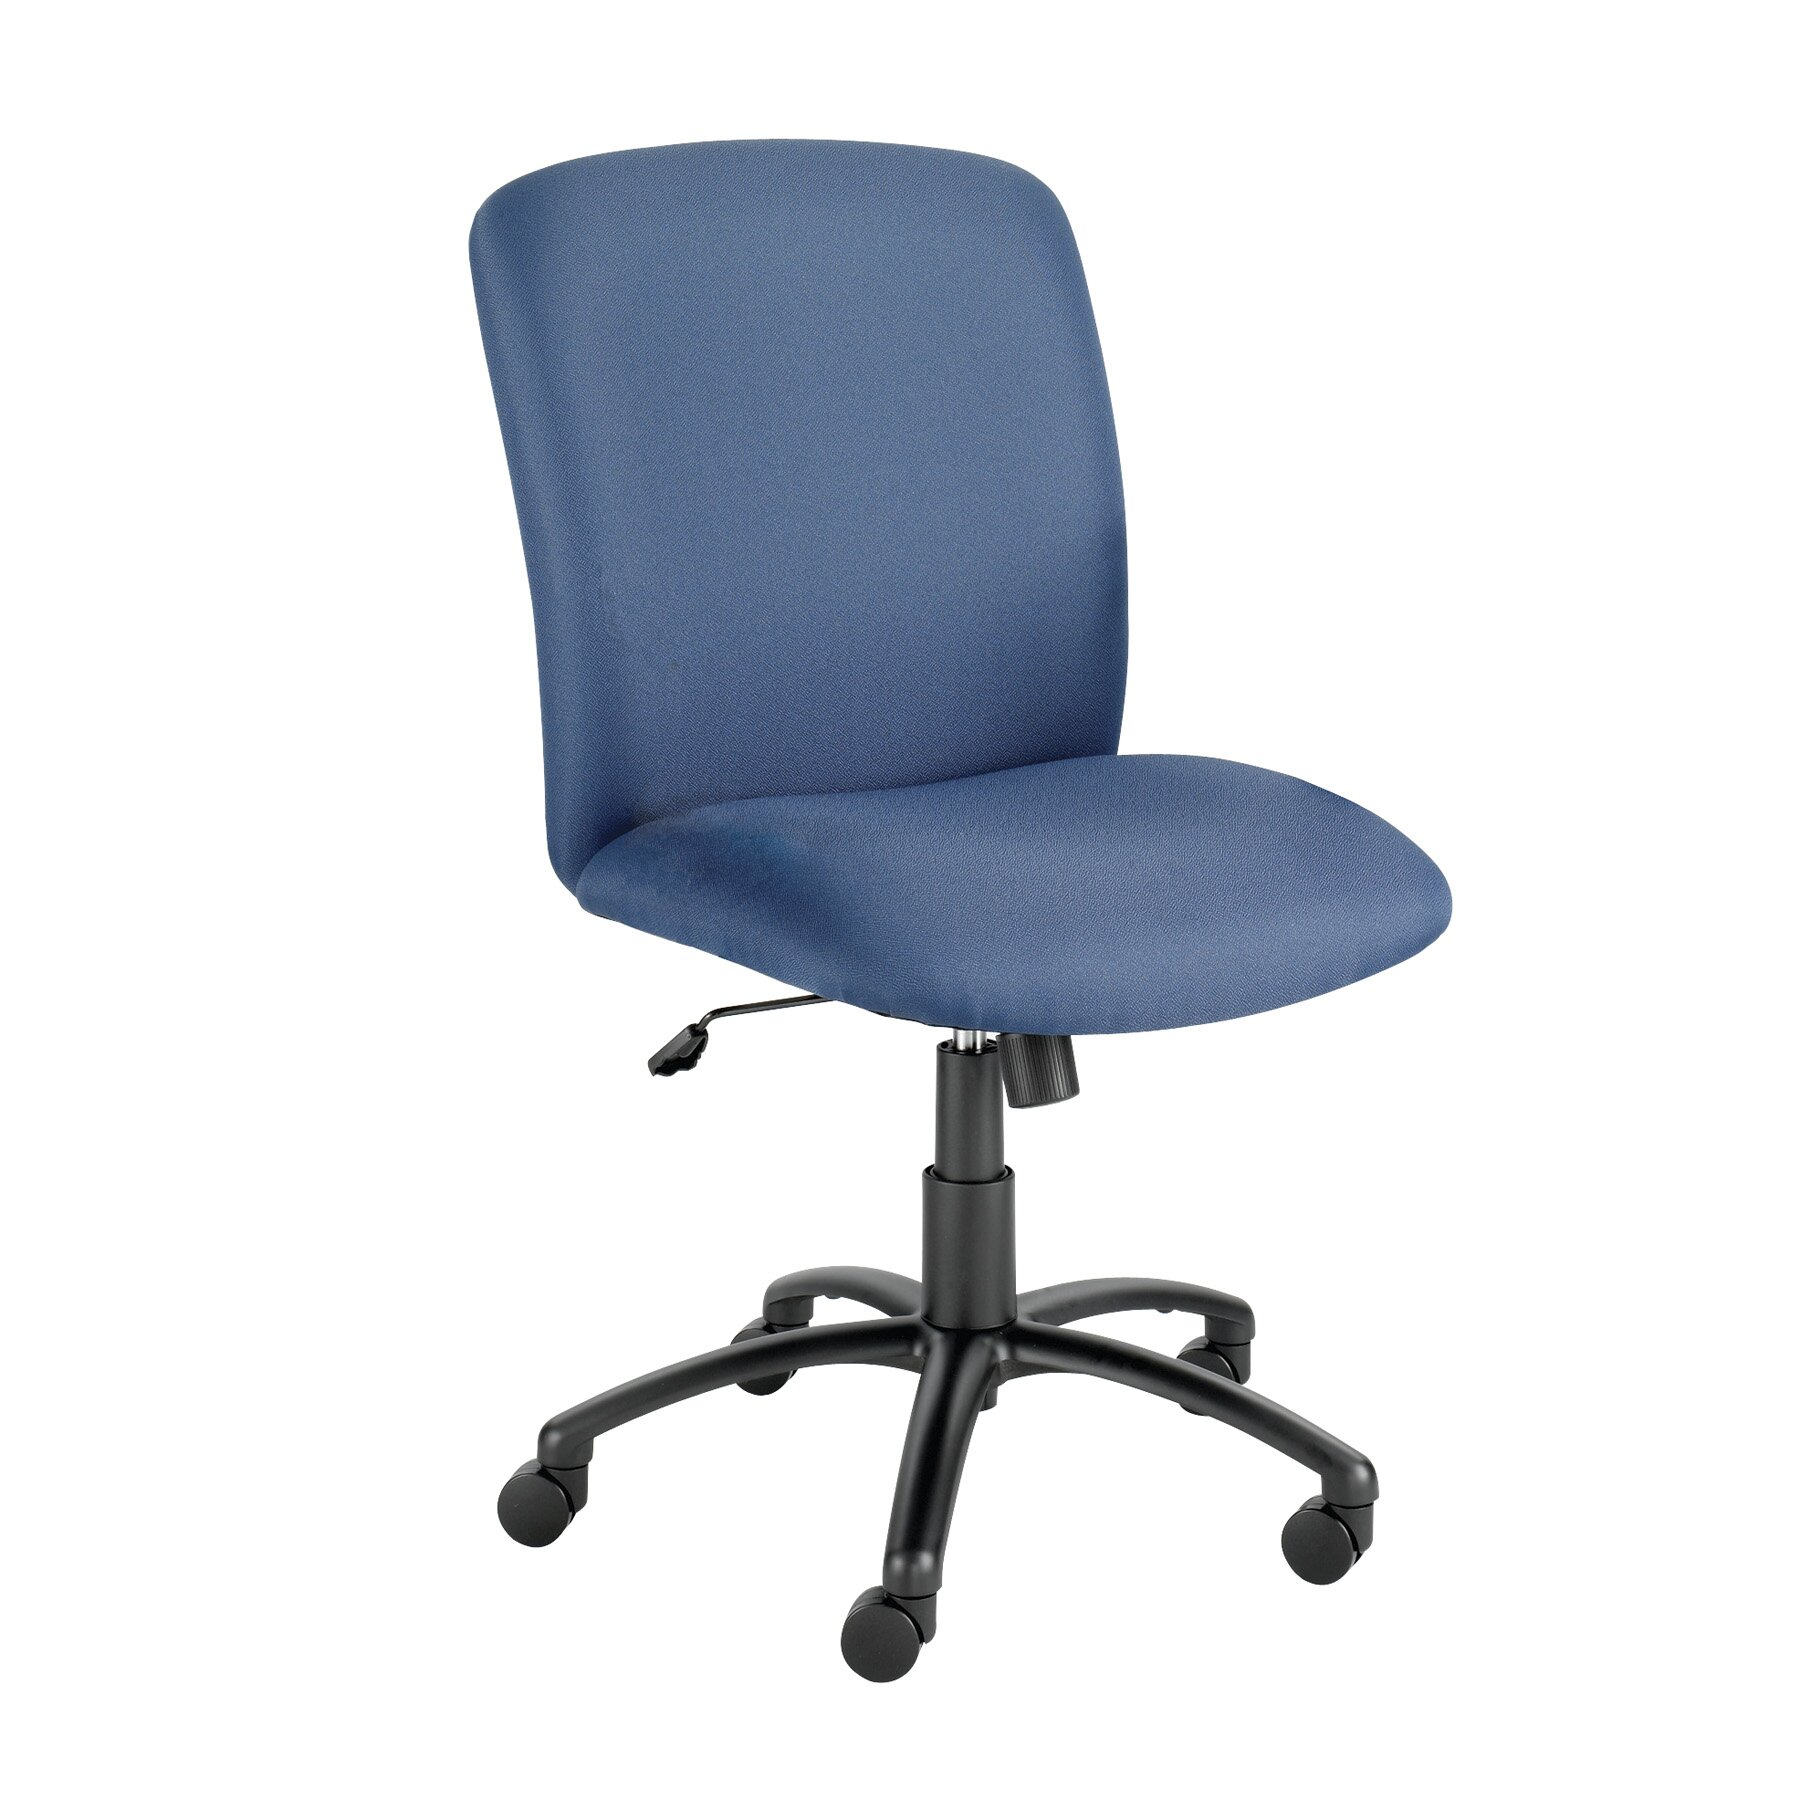 Safco Products High Back Big And Tall Swivel Office Chair Reviews Wayfair